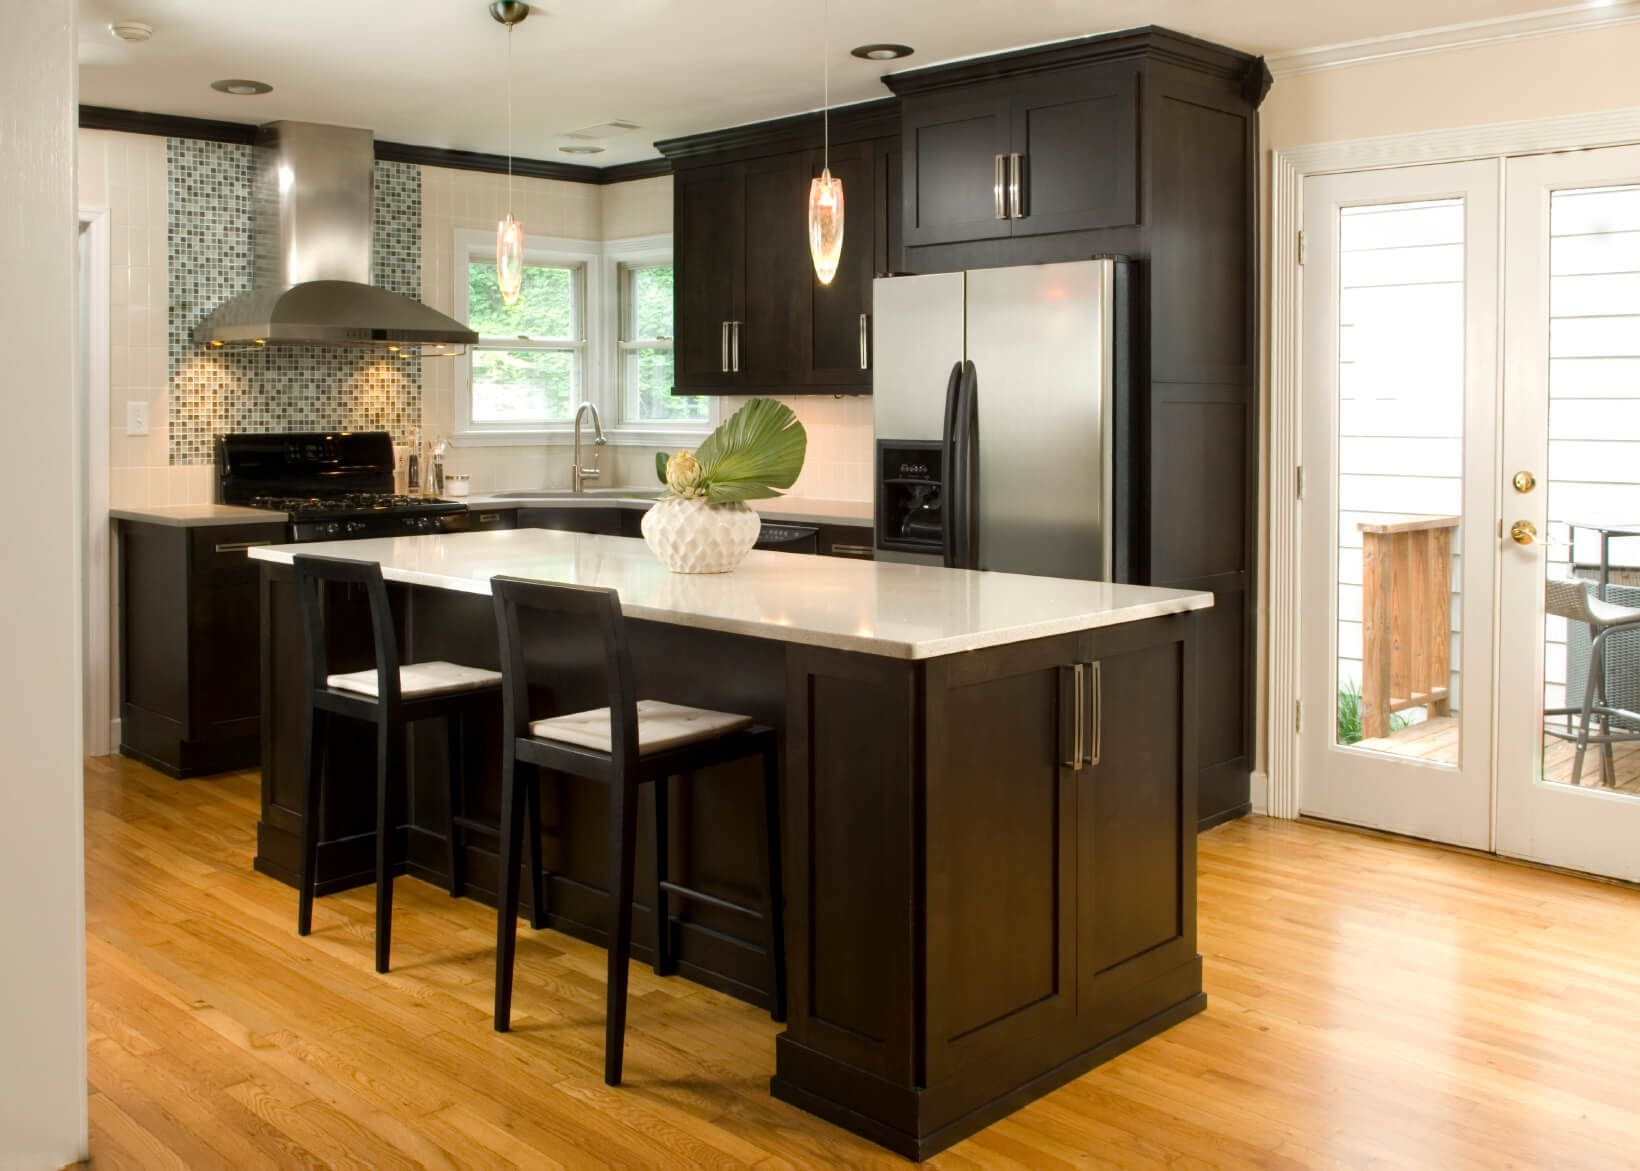 52 Dark Kitchens With Dark Wood Or Black Kitchen Cabinets 2020 Classy Kitchen Dark Wood Kitchen Cabinets Dark Wood Kitchens